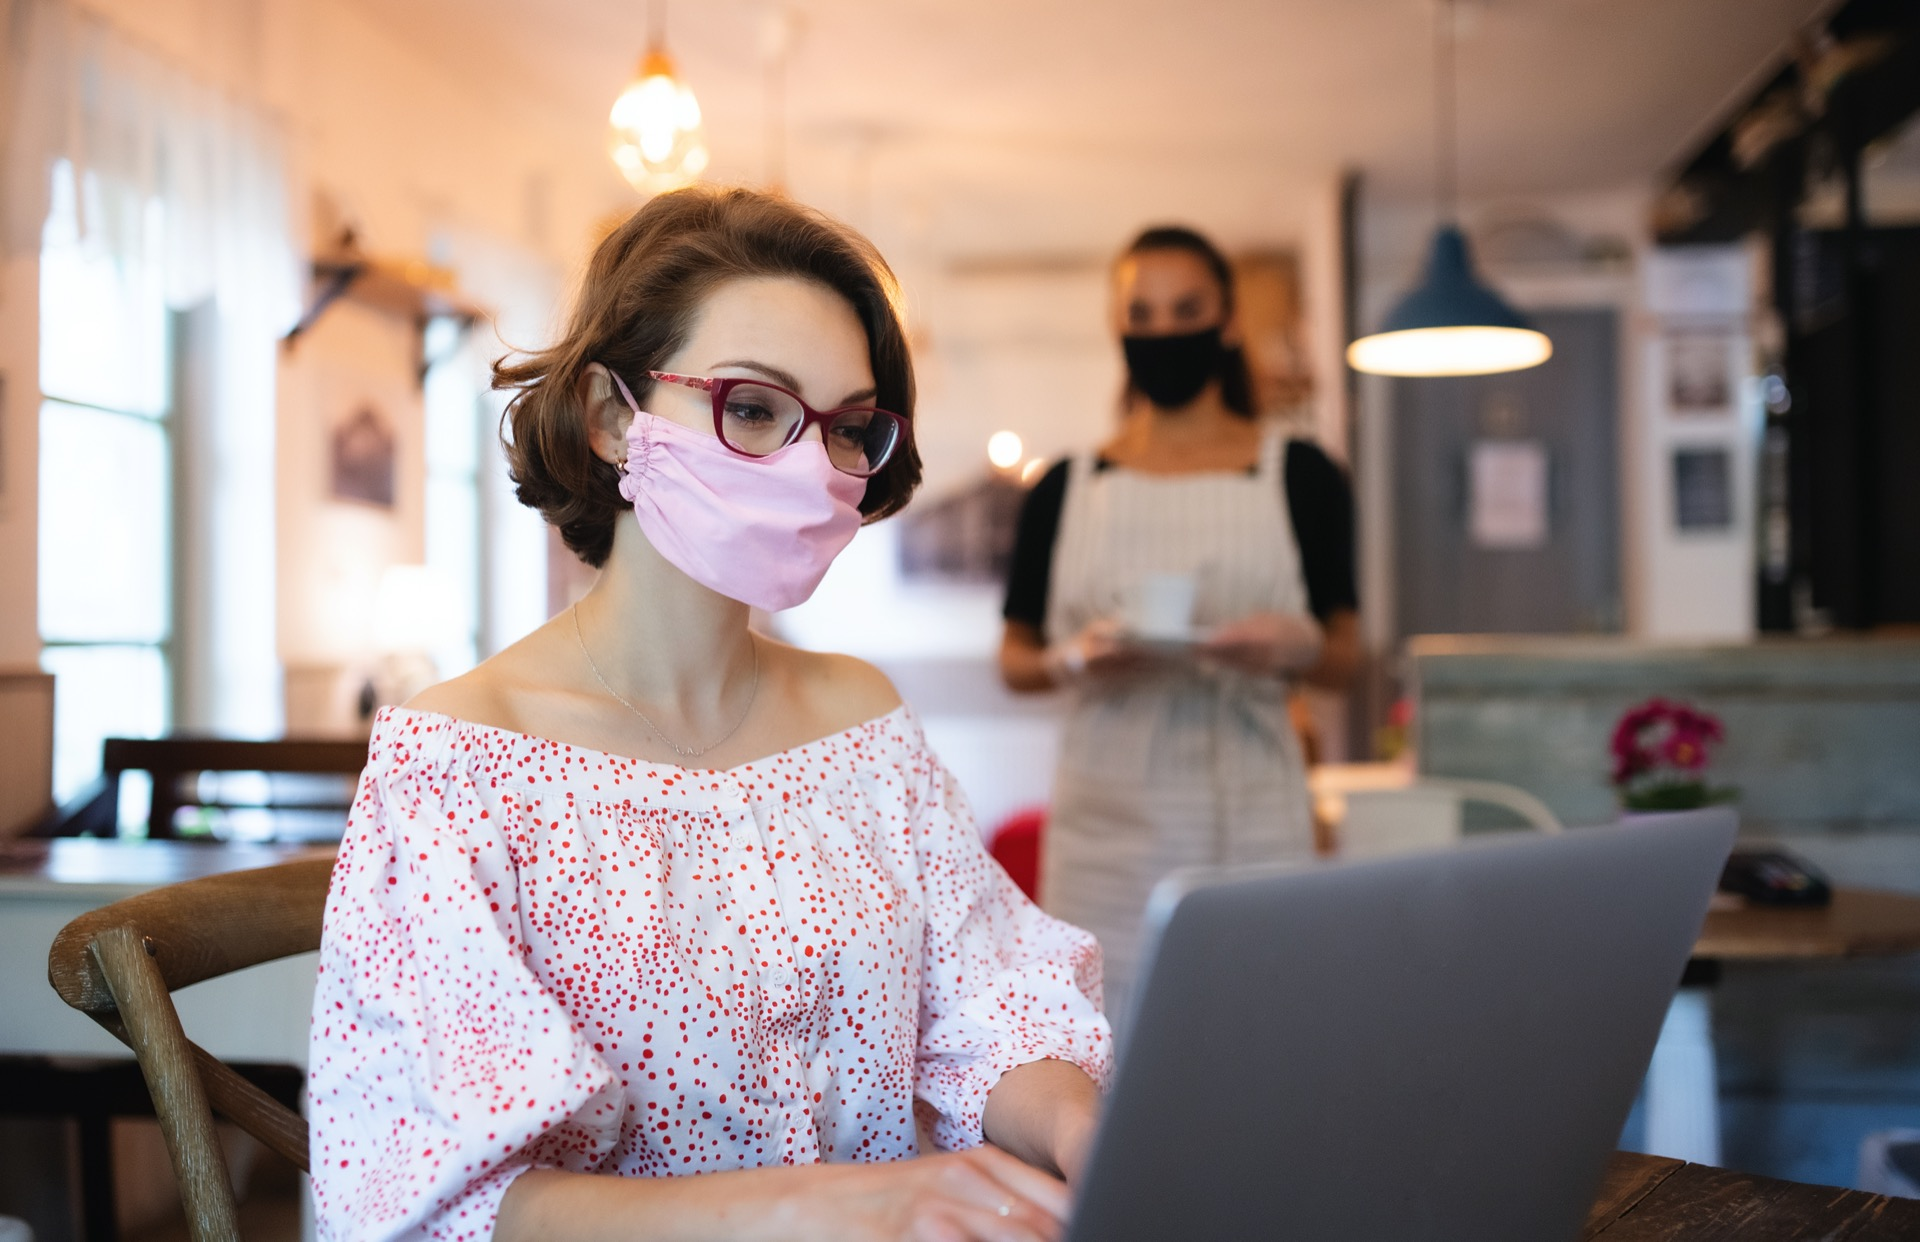 young-woman-with-face-mask-and-laptop-indoors-in-c-WBWWXGA